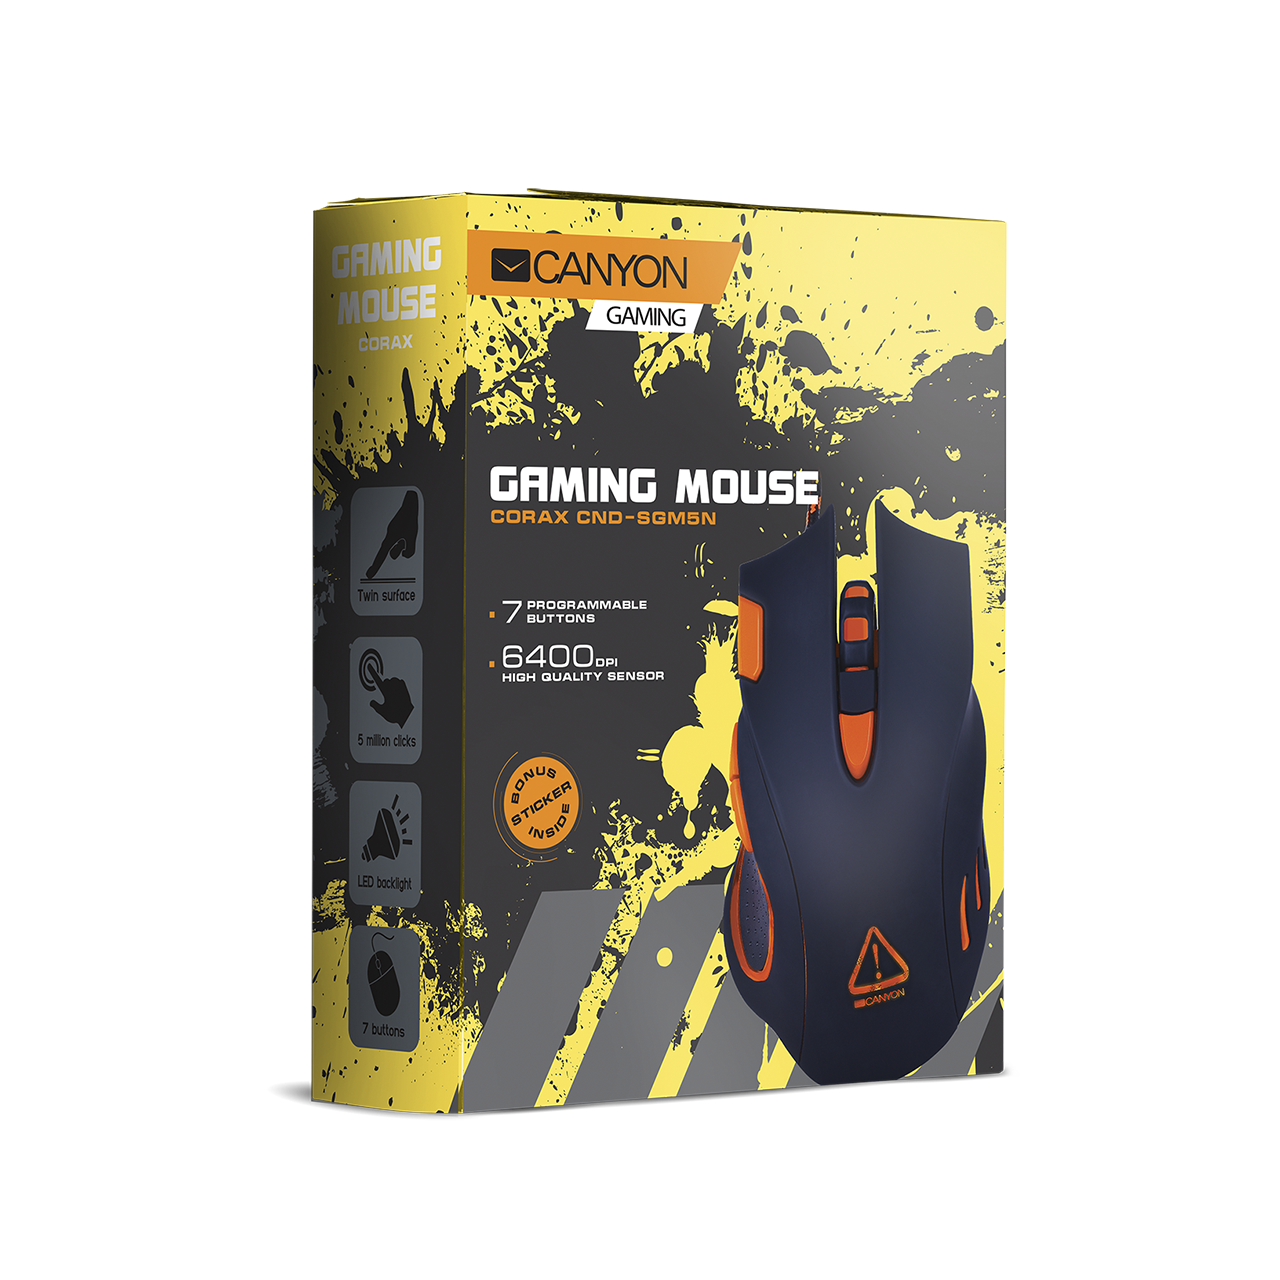 Corax Gaming Mouse (CND-SGM5N) - Canyon